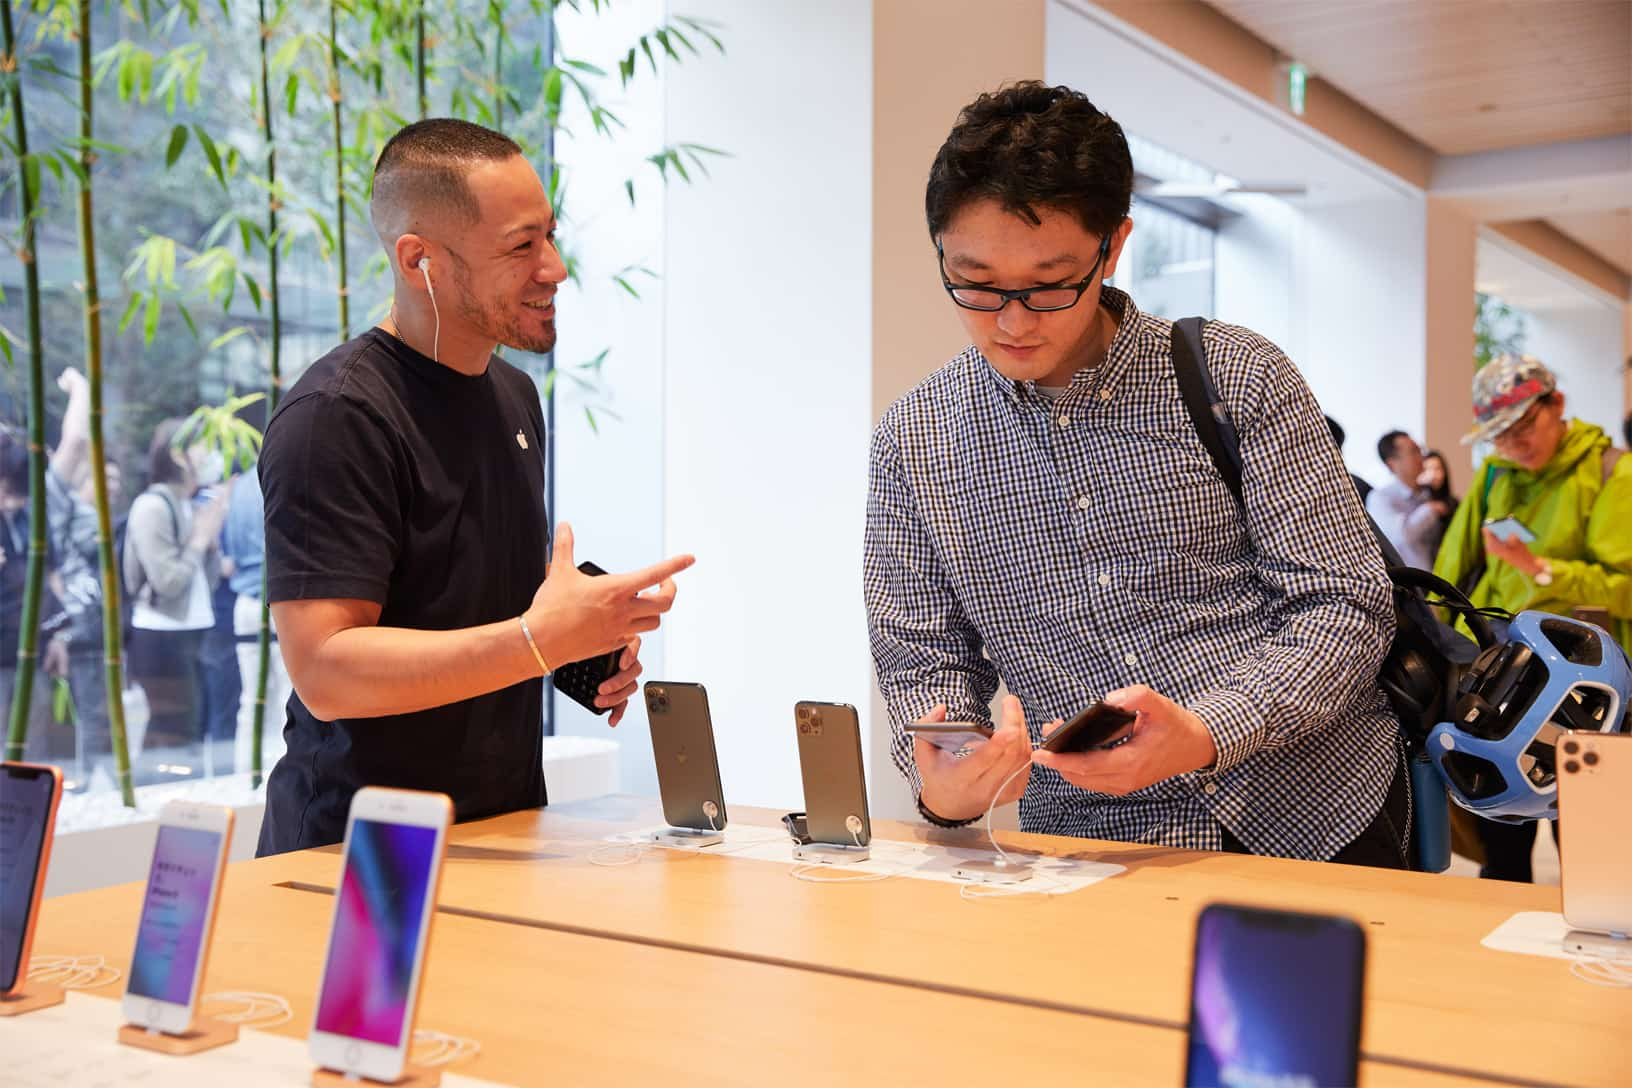 Apple Iphone 11 Pro Apple Watch 5 Availability Tokyo Man With Apple Team Member 092019